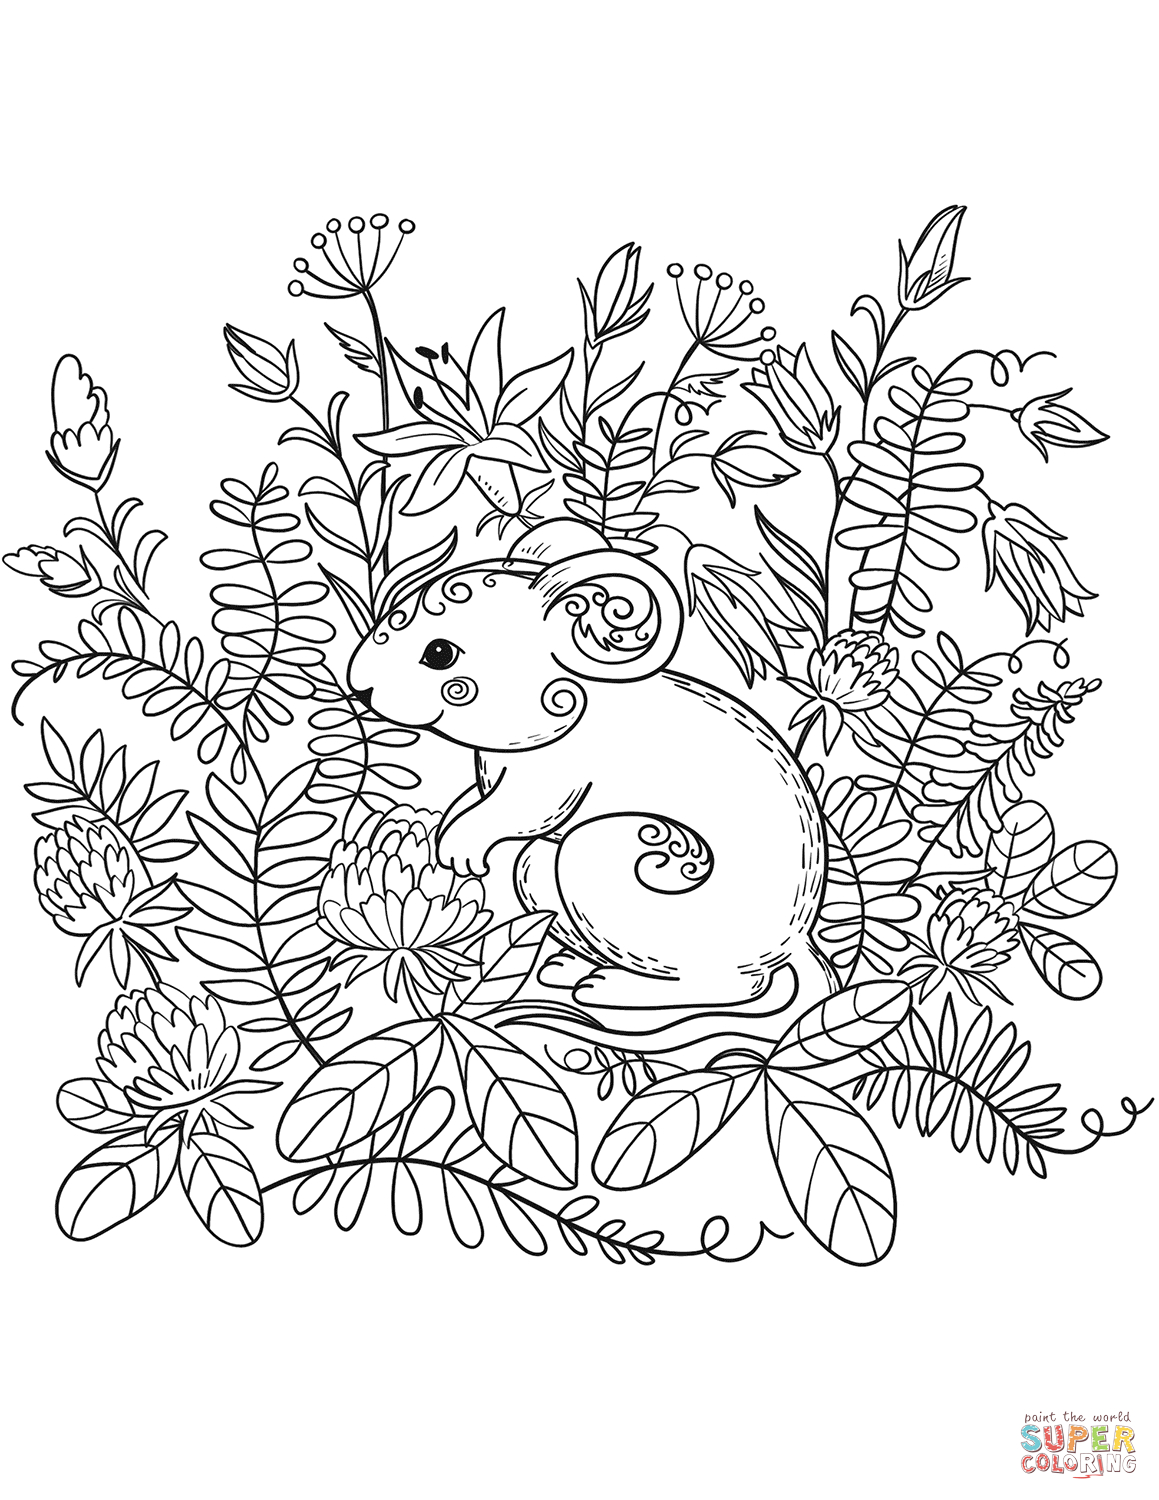 Plants & Animals   Free Coloring Pages   crayola.com   1500x1159